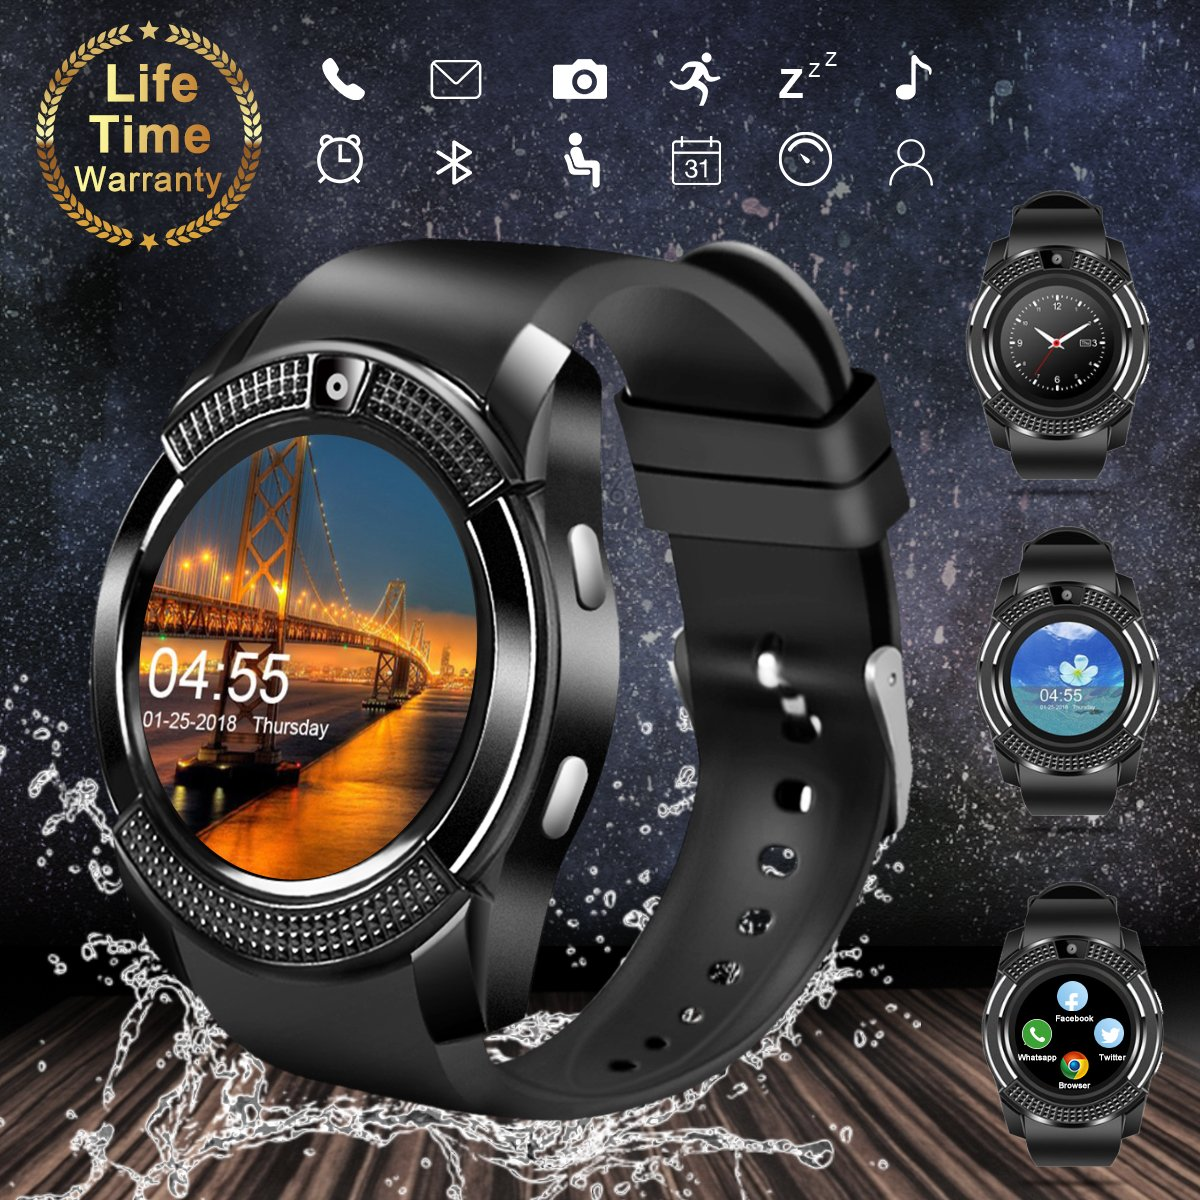 Bluetooth Smart Watch with Camera, Touchscreen Smart Wrist Watch with Sim Card Slot, Camera Controller Bluetooth Watch Unlocked Waterproof Smart Watch Phone for iPhone Android Samsung Men Women by Topffy